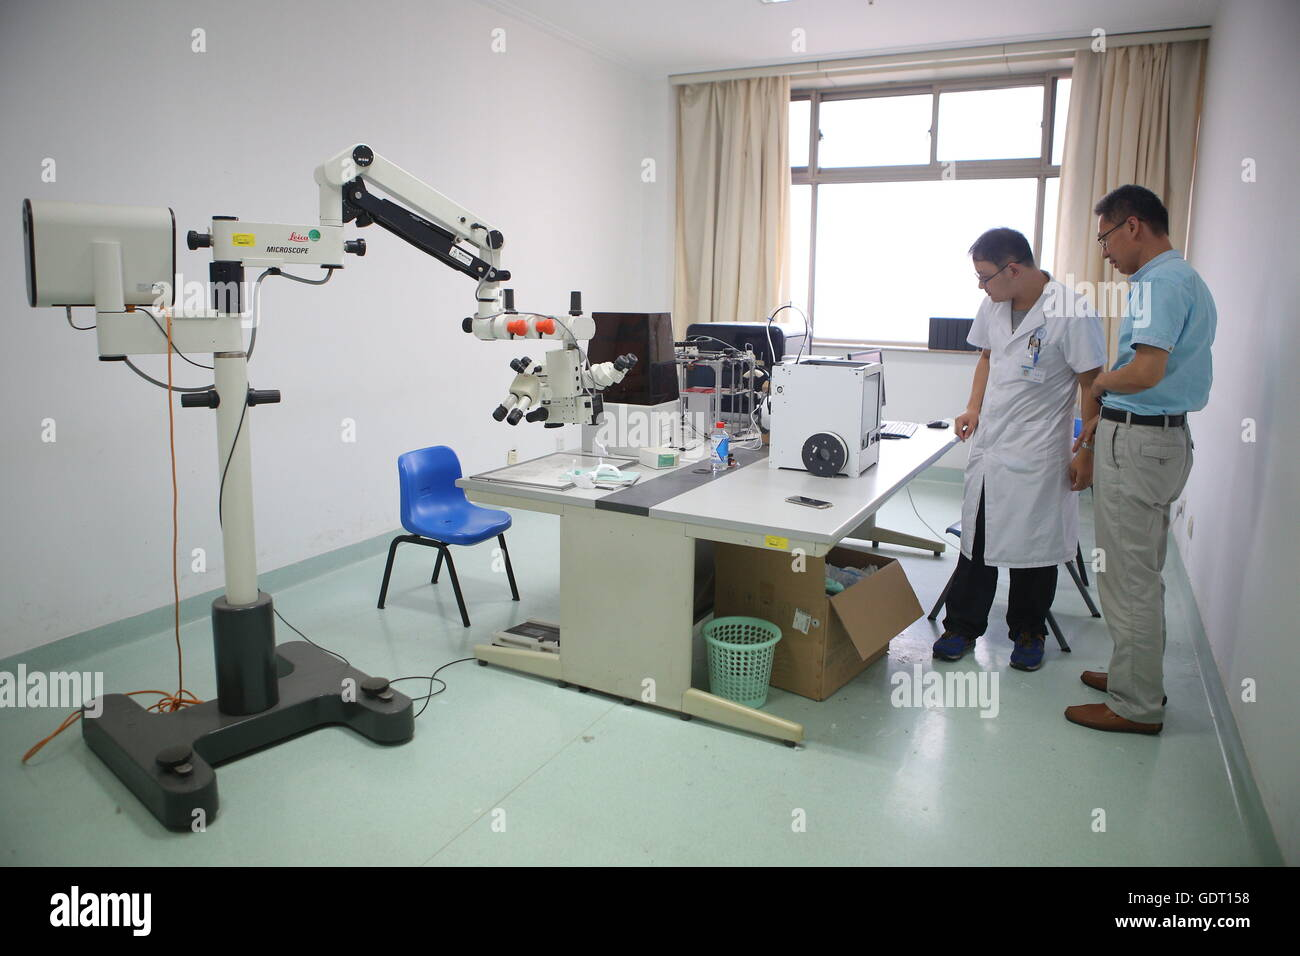 Binzhou, Binzhou, China. 19th July, 2016. Binzhou, China - July 19 2016: (EDITORIAL USE ONLY. CHINA OUT) Binzhou - Stock Image